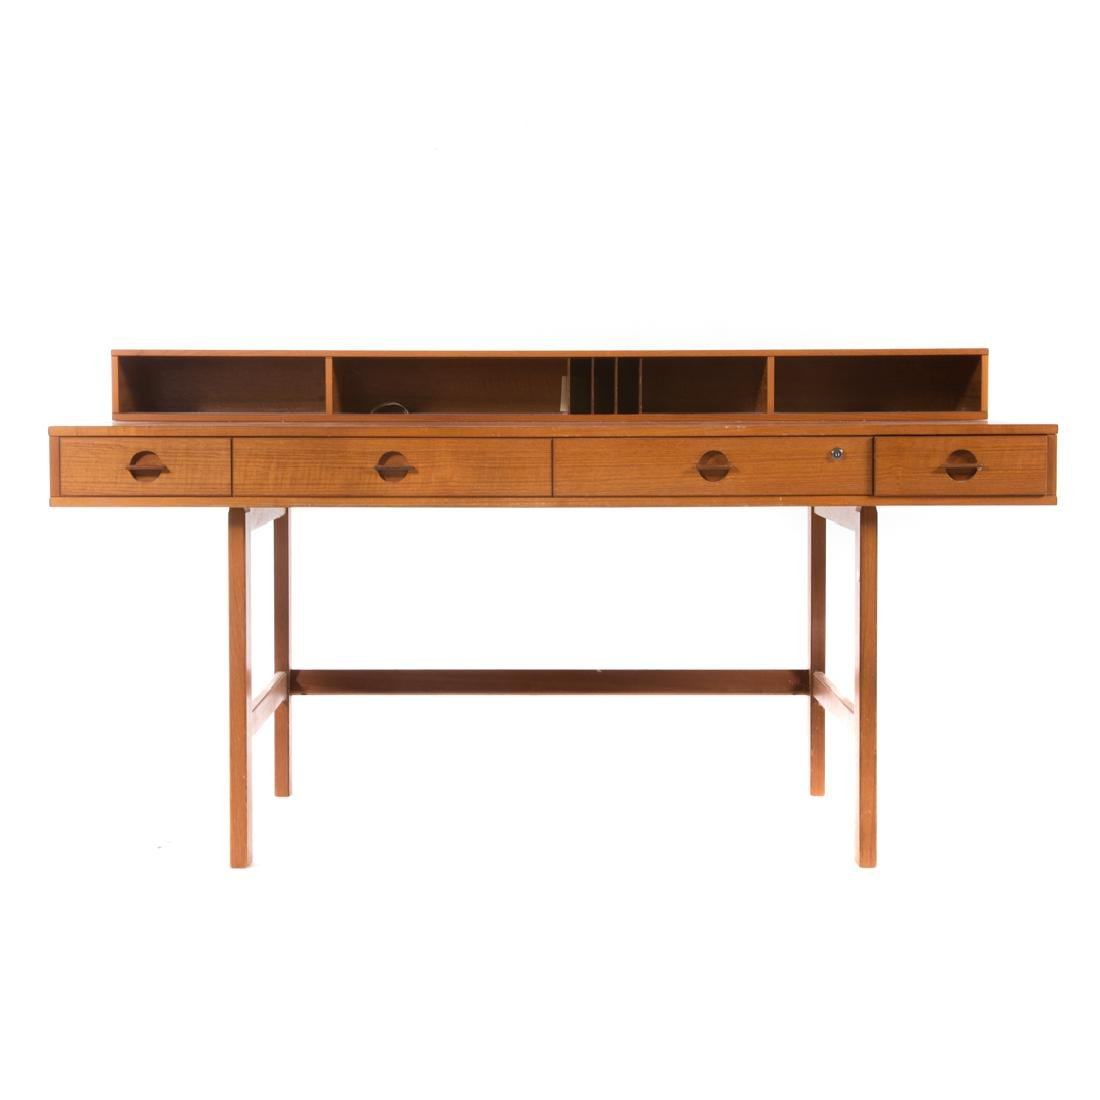 Peter Løvig Nielsen flip-top teakwood desk